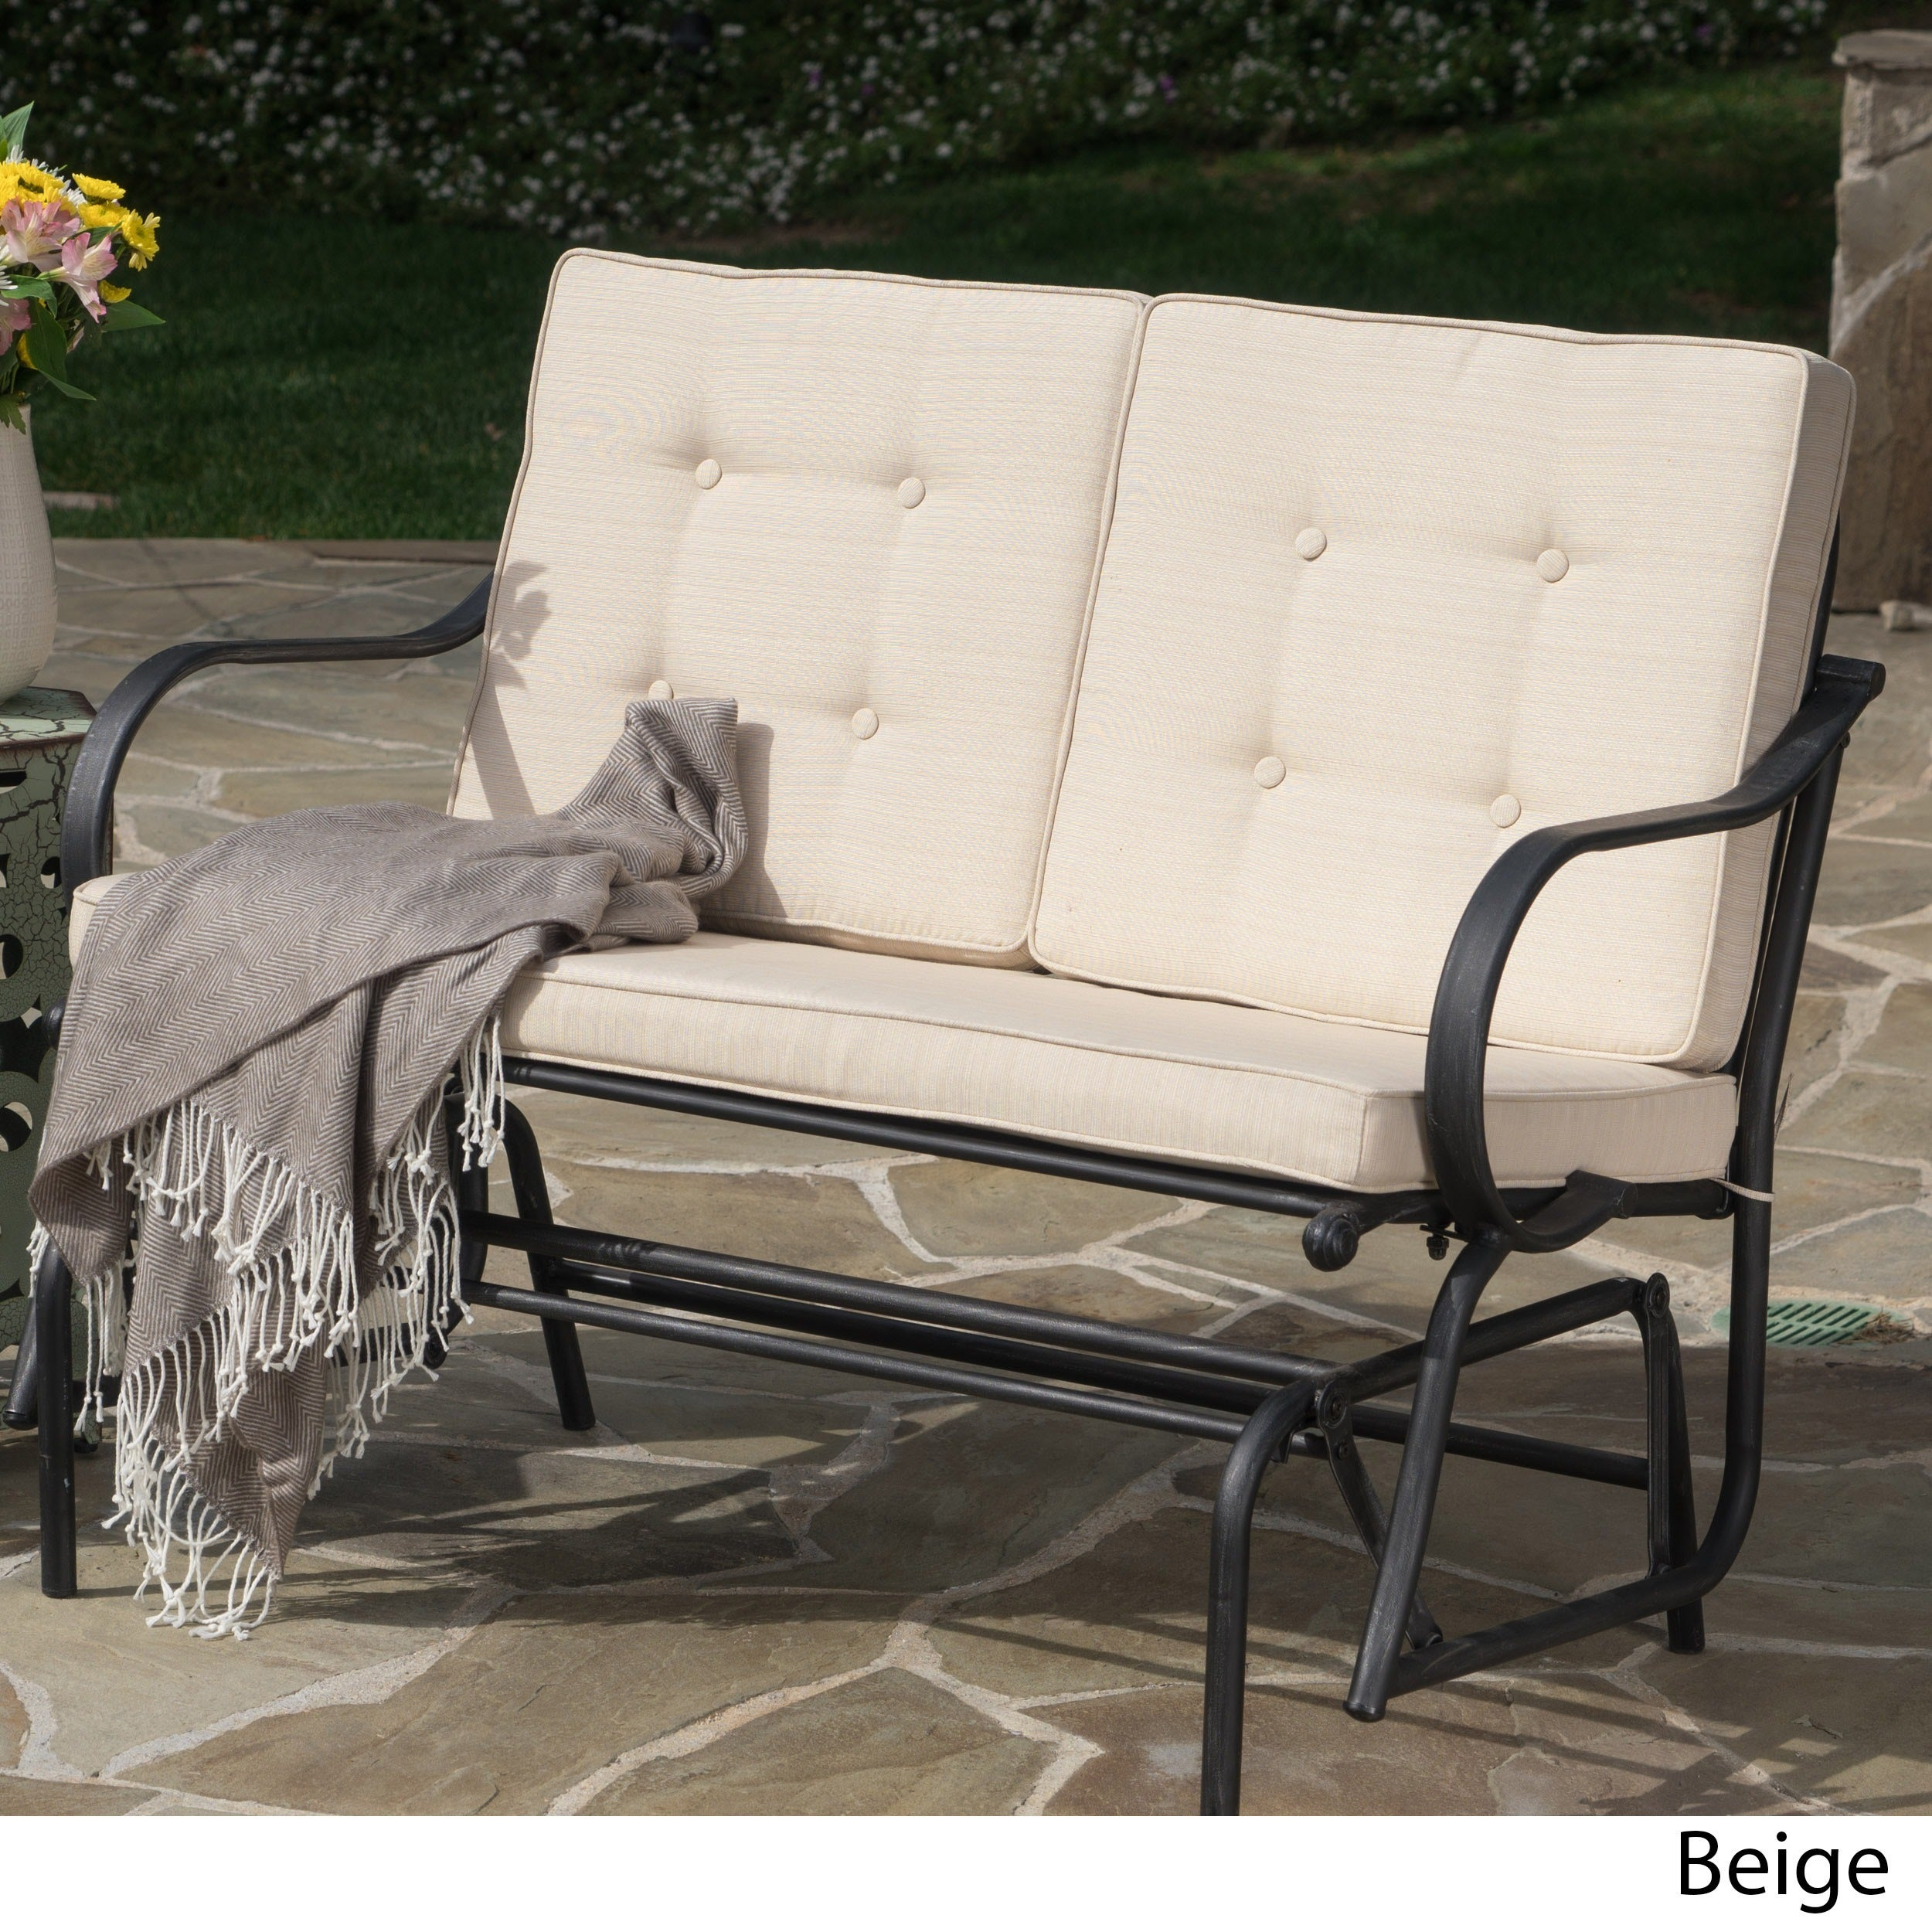 San Jose Outdoor Rocking Bench With Cushionschristopher Knight Home With Rocking Benches With Cushions (View 14 of 25)